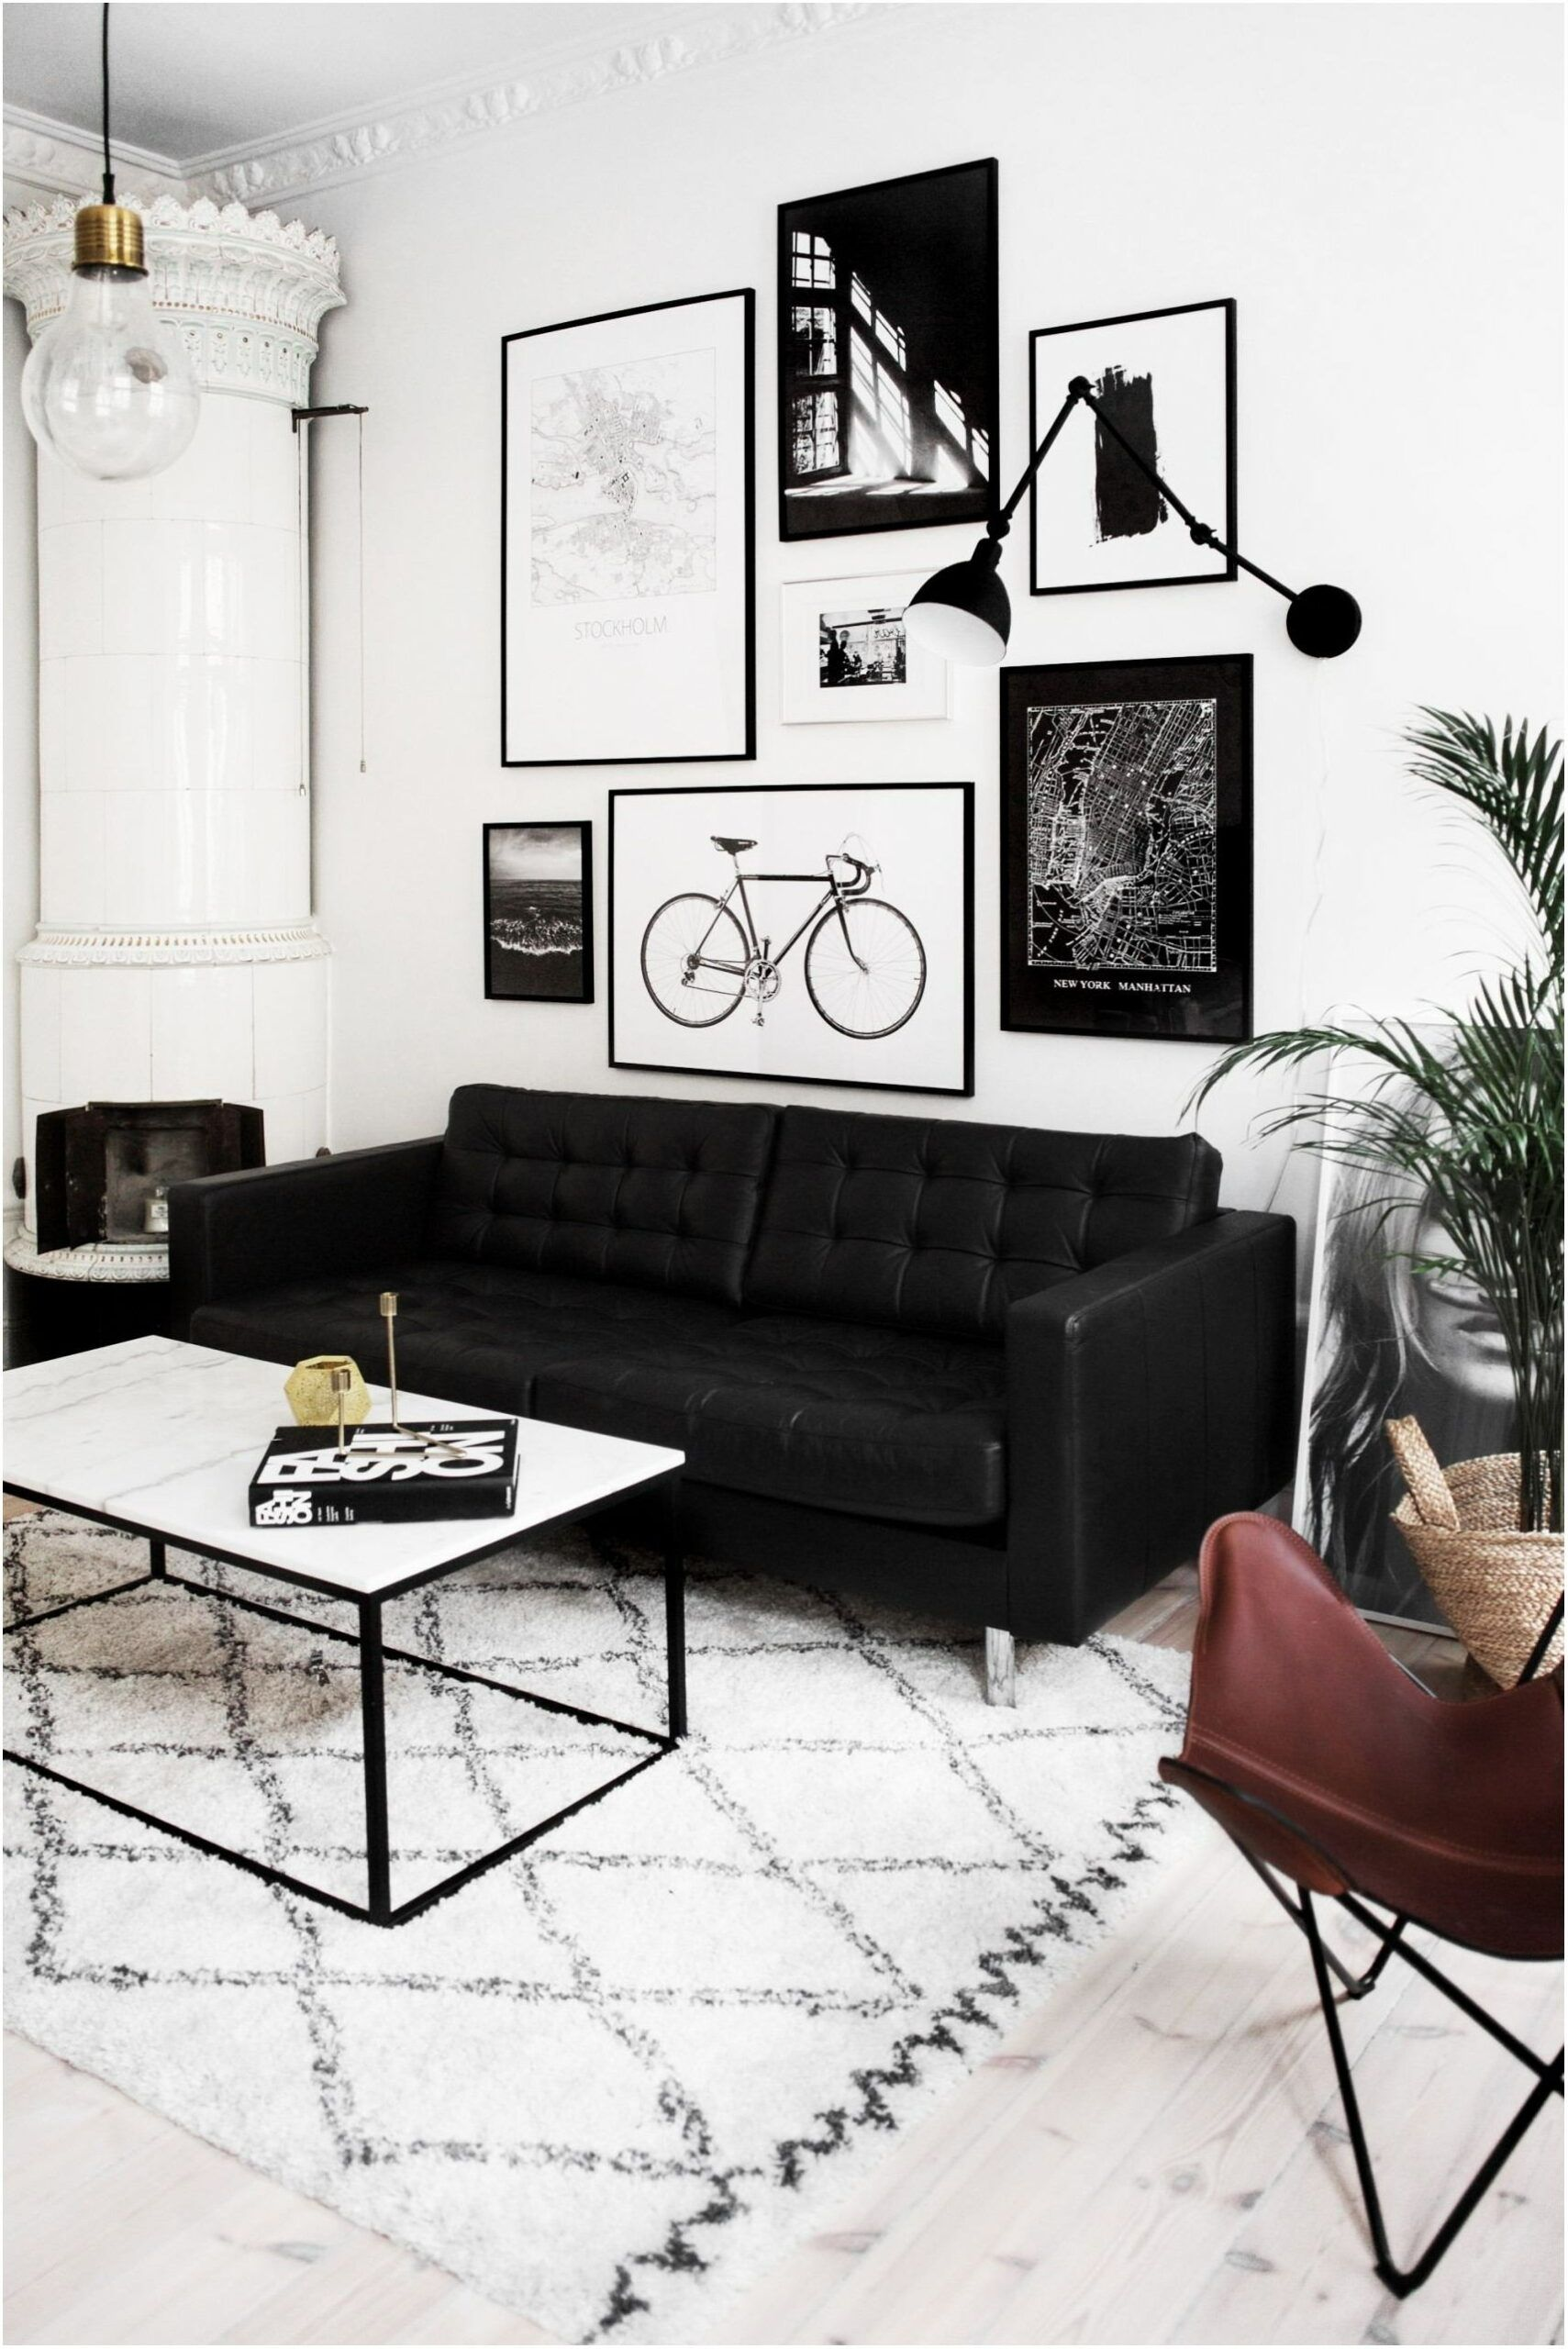 Interior Design Small Living Room Black Couch Black And White Living Room Black Couch Living Room Living Room White